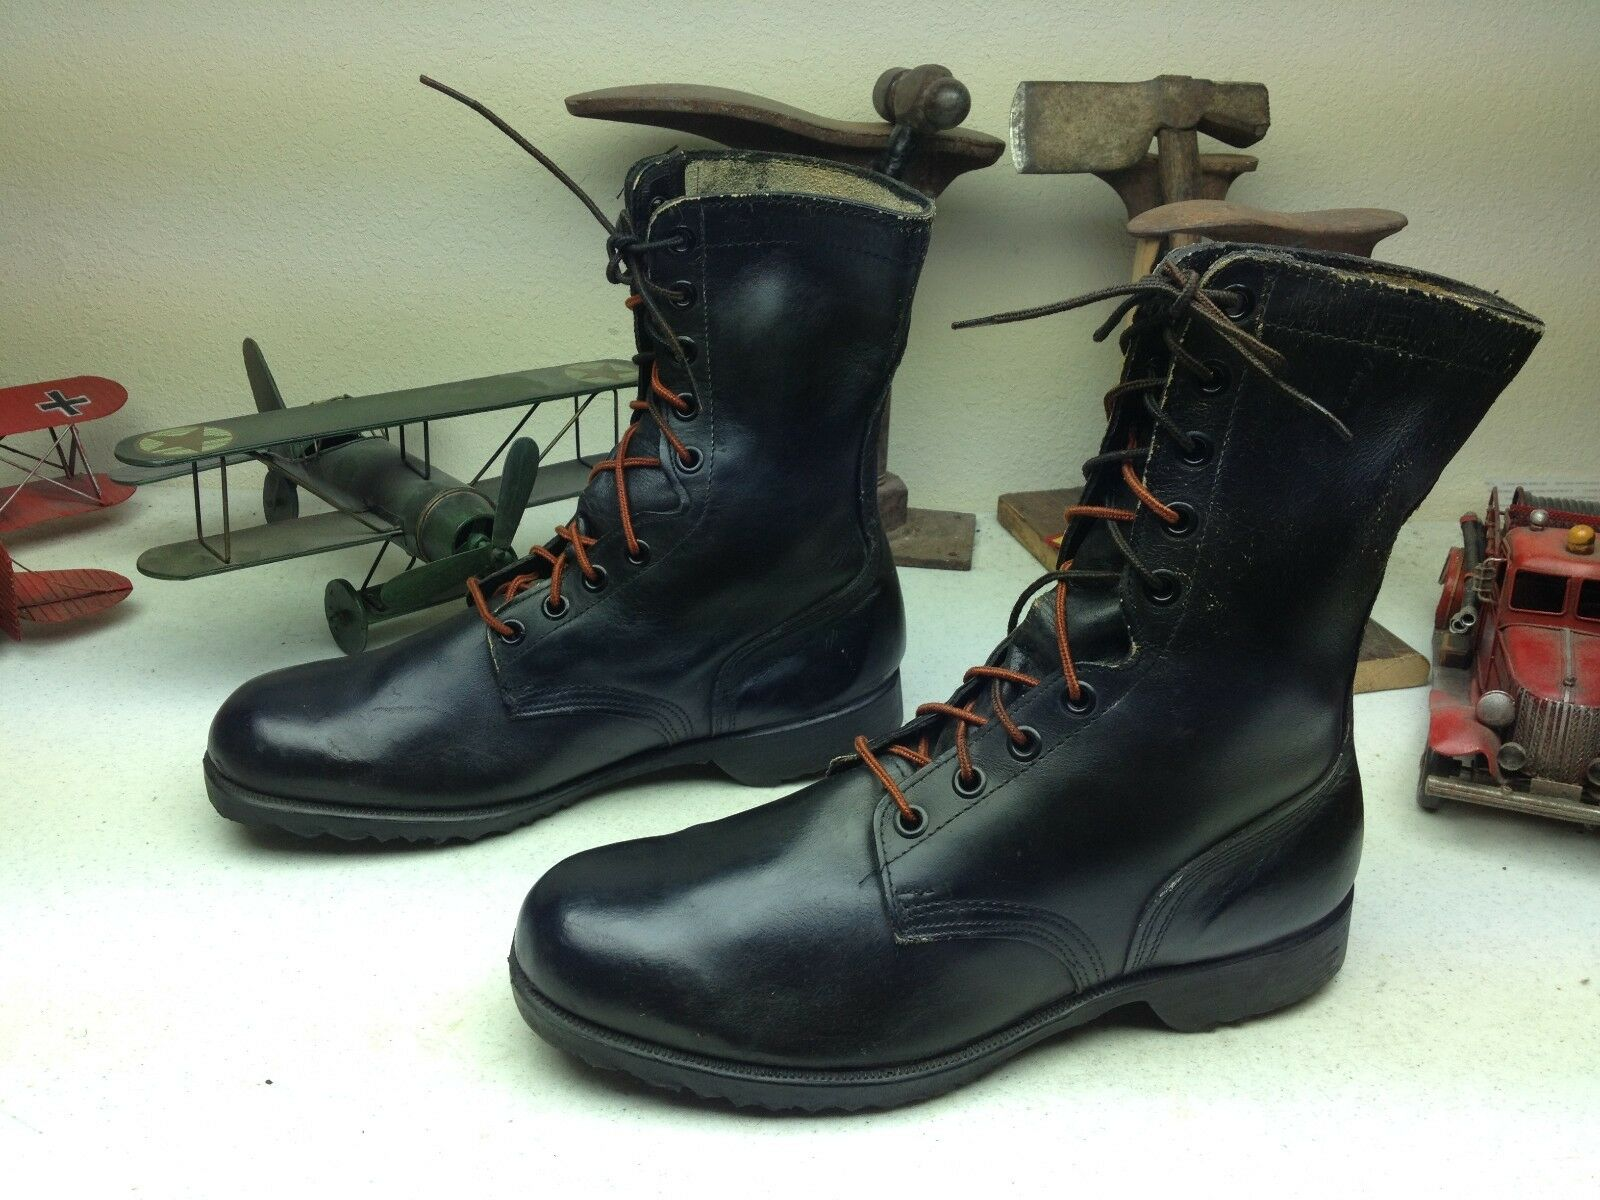 1984 USA VINTAGE pinkARCH BLACK LEATHER MILITARY ENGINEER BOSS BOOTS SIZE 12 XW